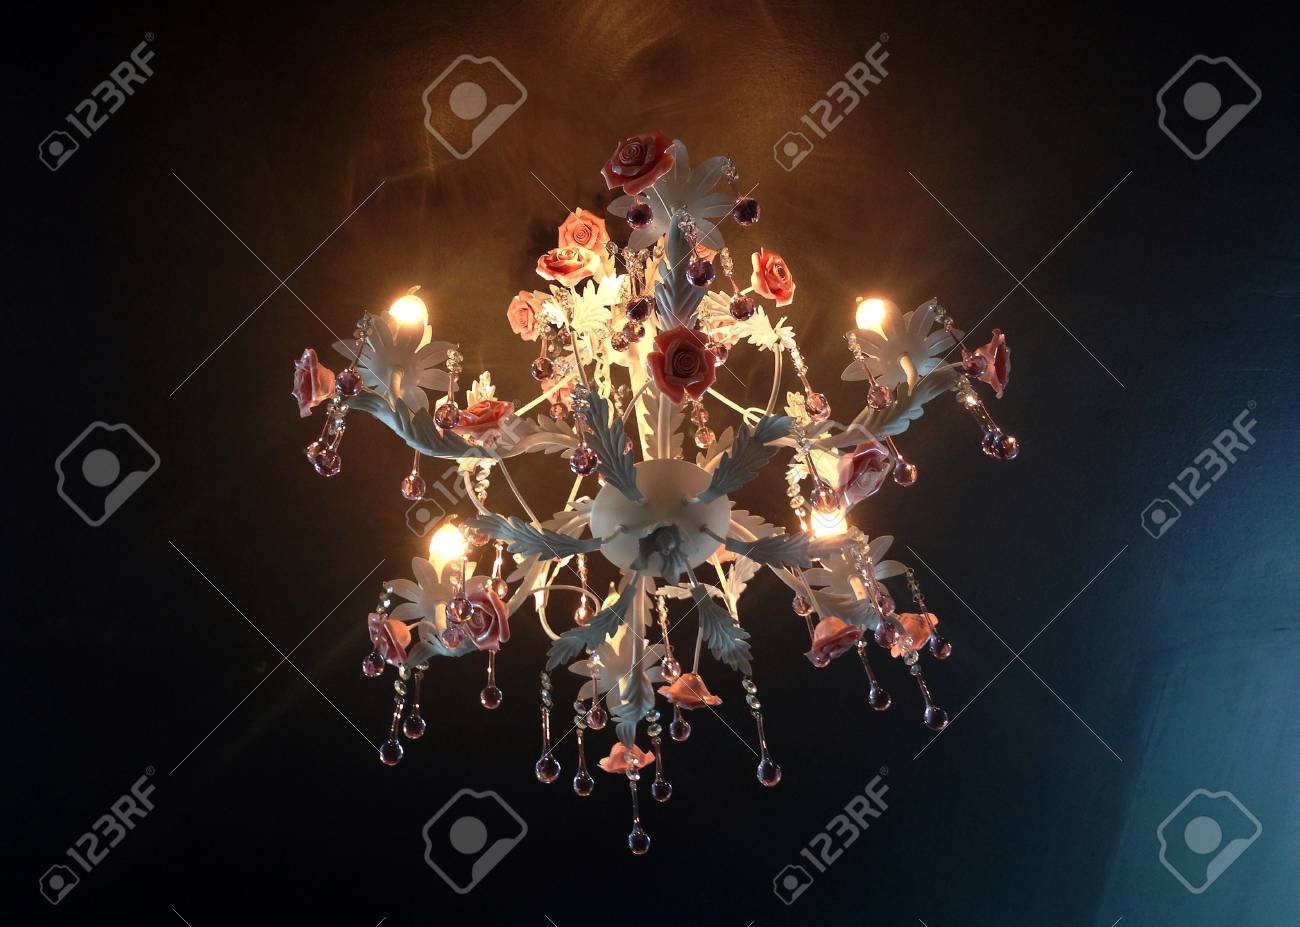 chandelier on the ceiling Stock Photo - 22879336